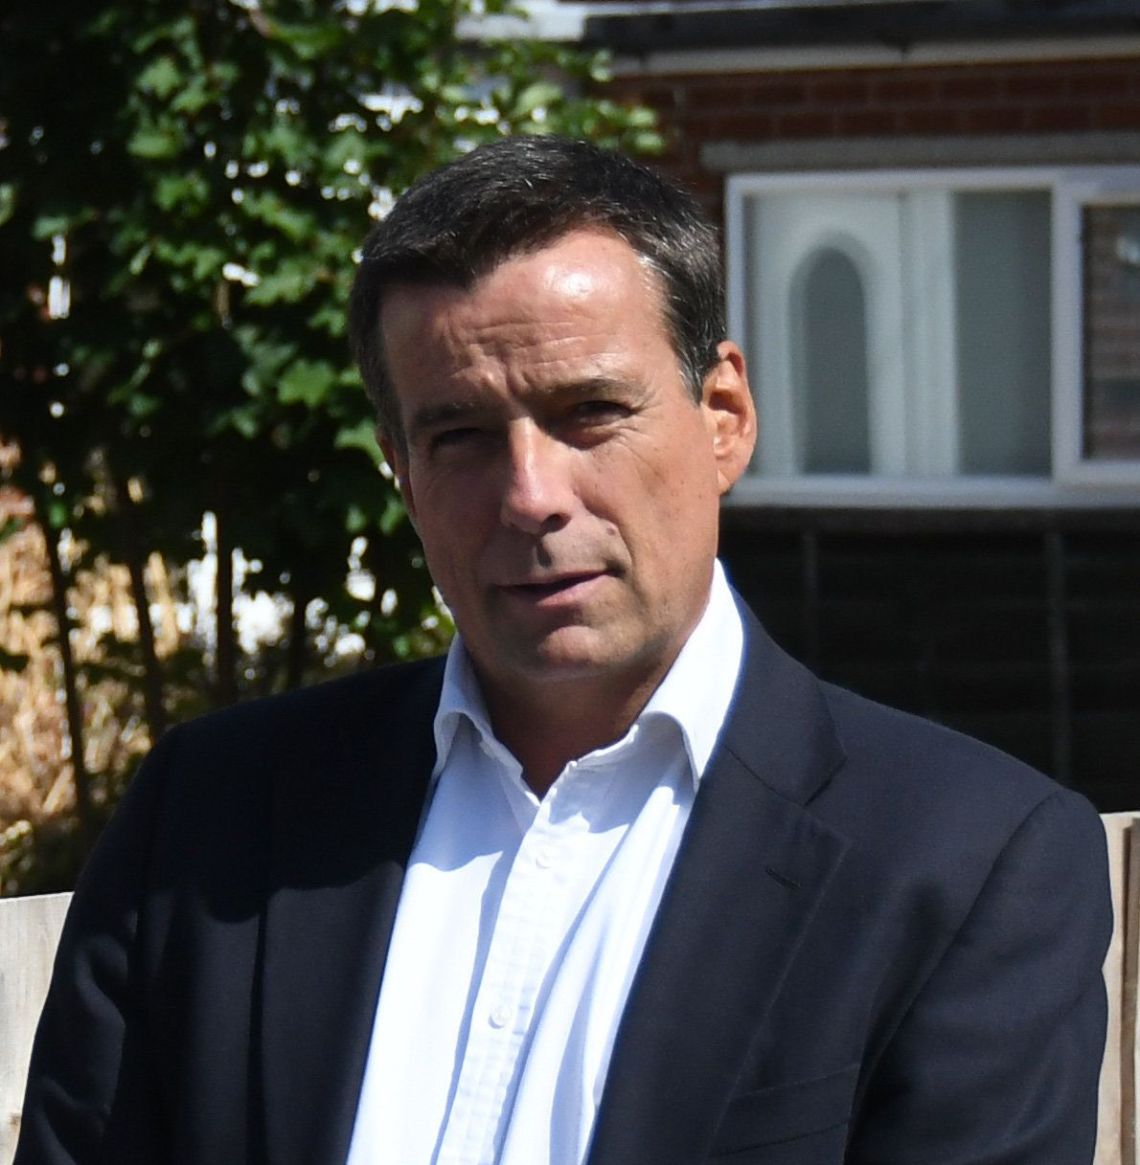 Cllr Paul Mercer, lead member for housing at Charnwood Borough Council